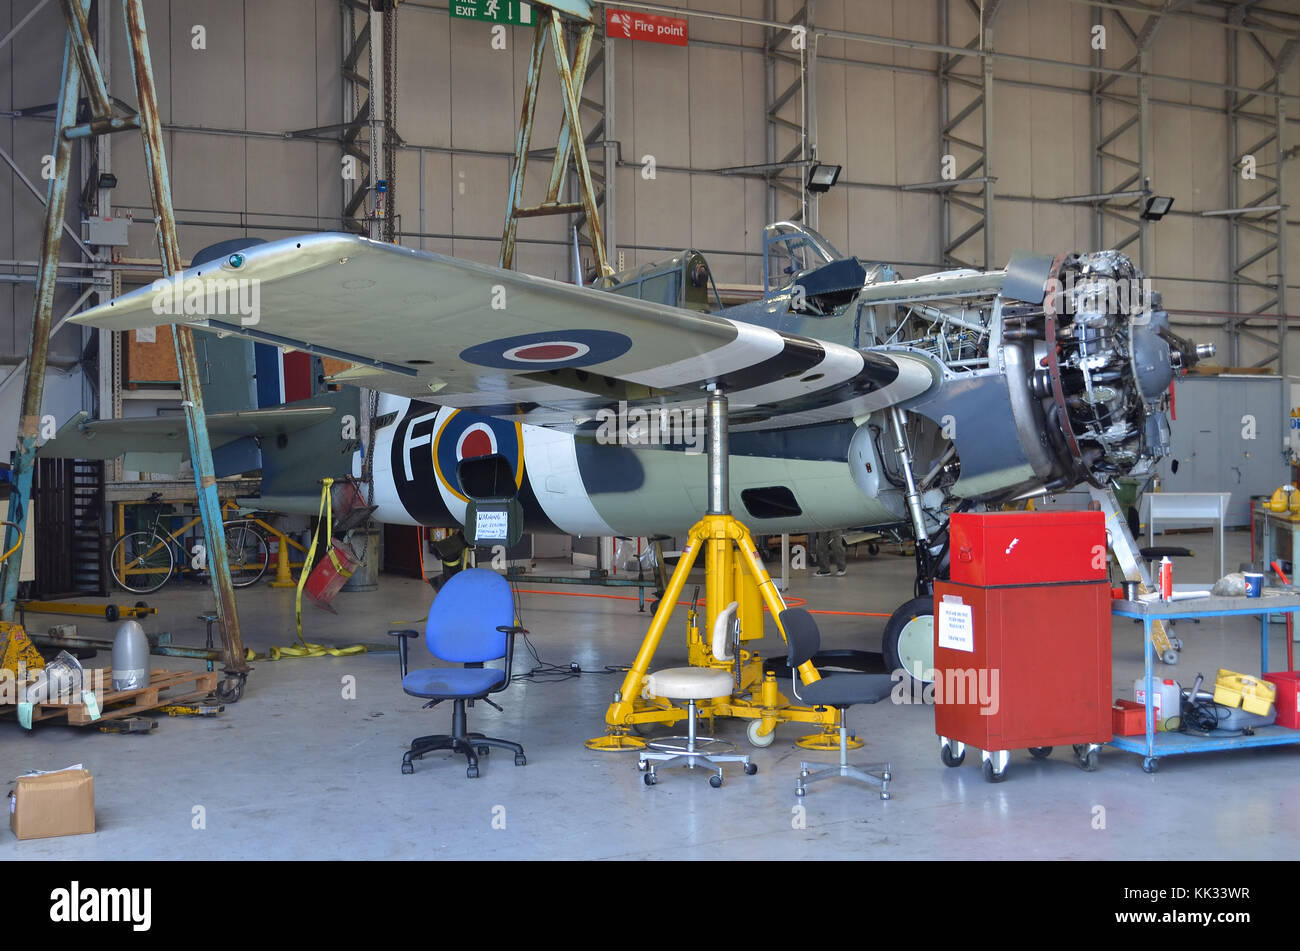 Grumman Wildcat FM2, built by General Motors, in Royal Navy Fleet Air Arm markings, undergoing maintenance by The - Stock Image